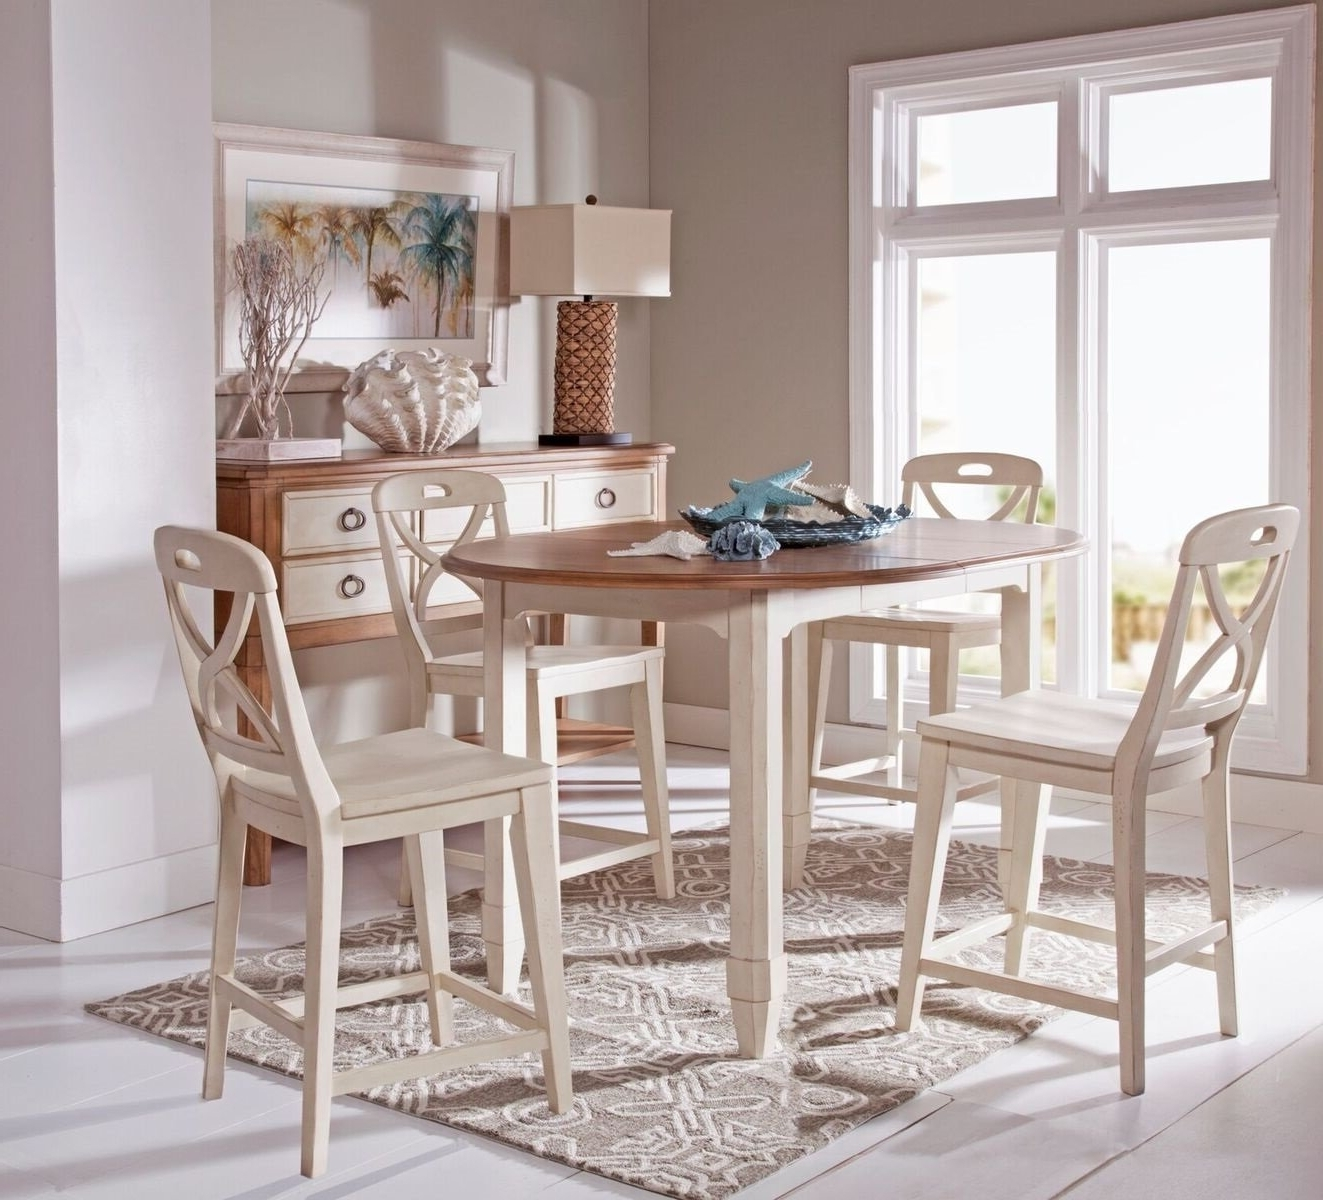 Wayfair For Current Extendable Dining Tables Sets (View 9 of 25)